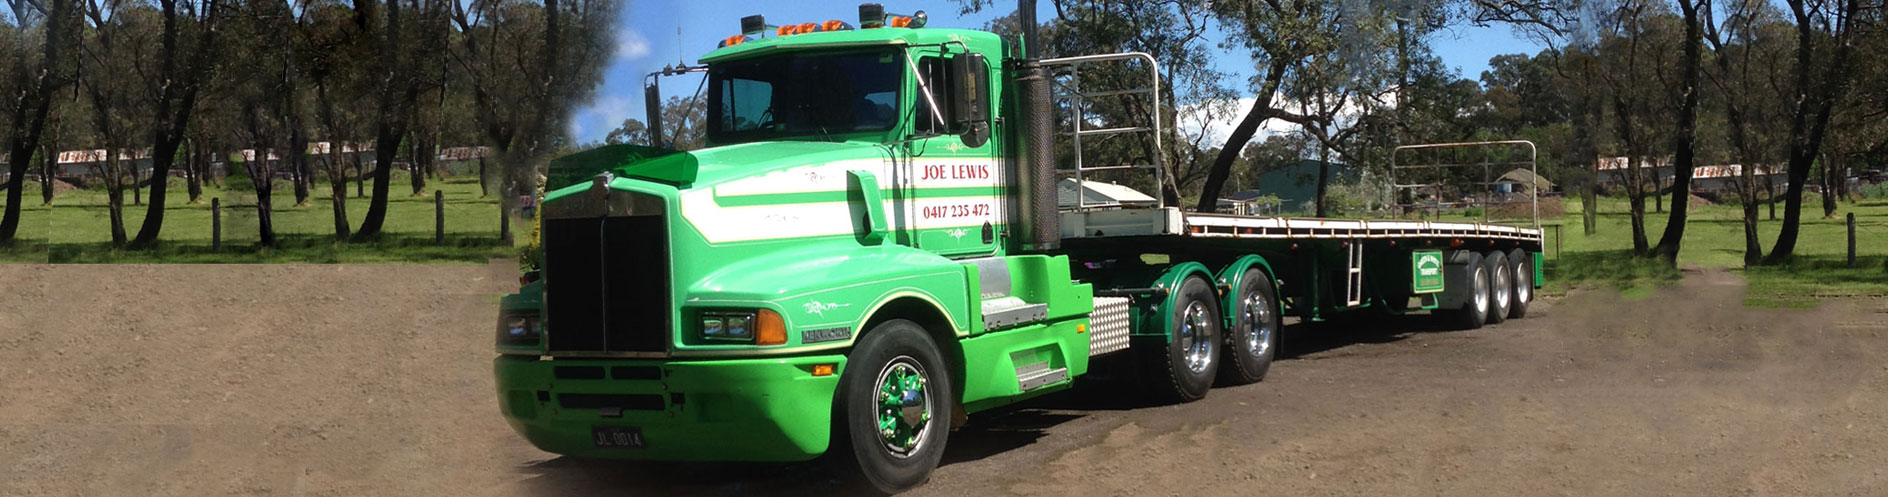 WHEN WE WASH TRUCKS & BUSES, WE DO IT RIGHT!